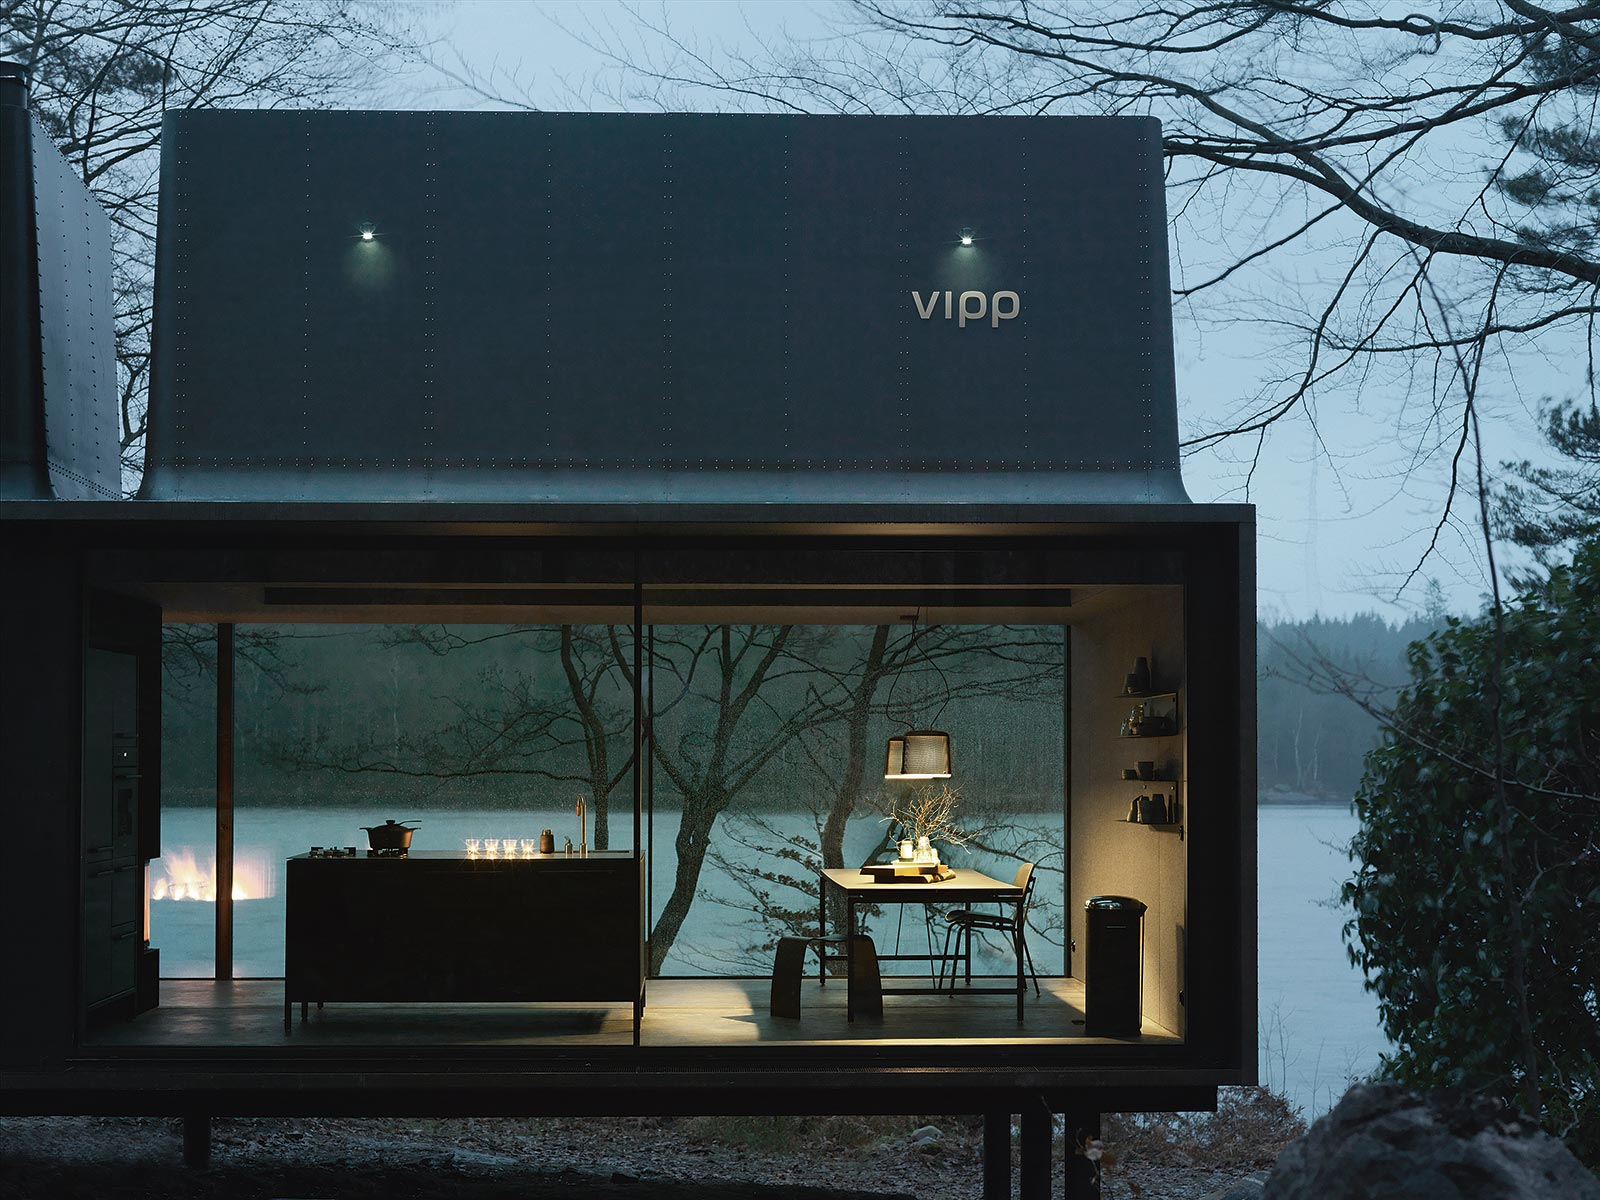 vipps-plug-and-play-getaway-shelter-32